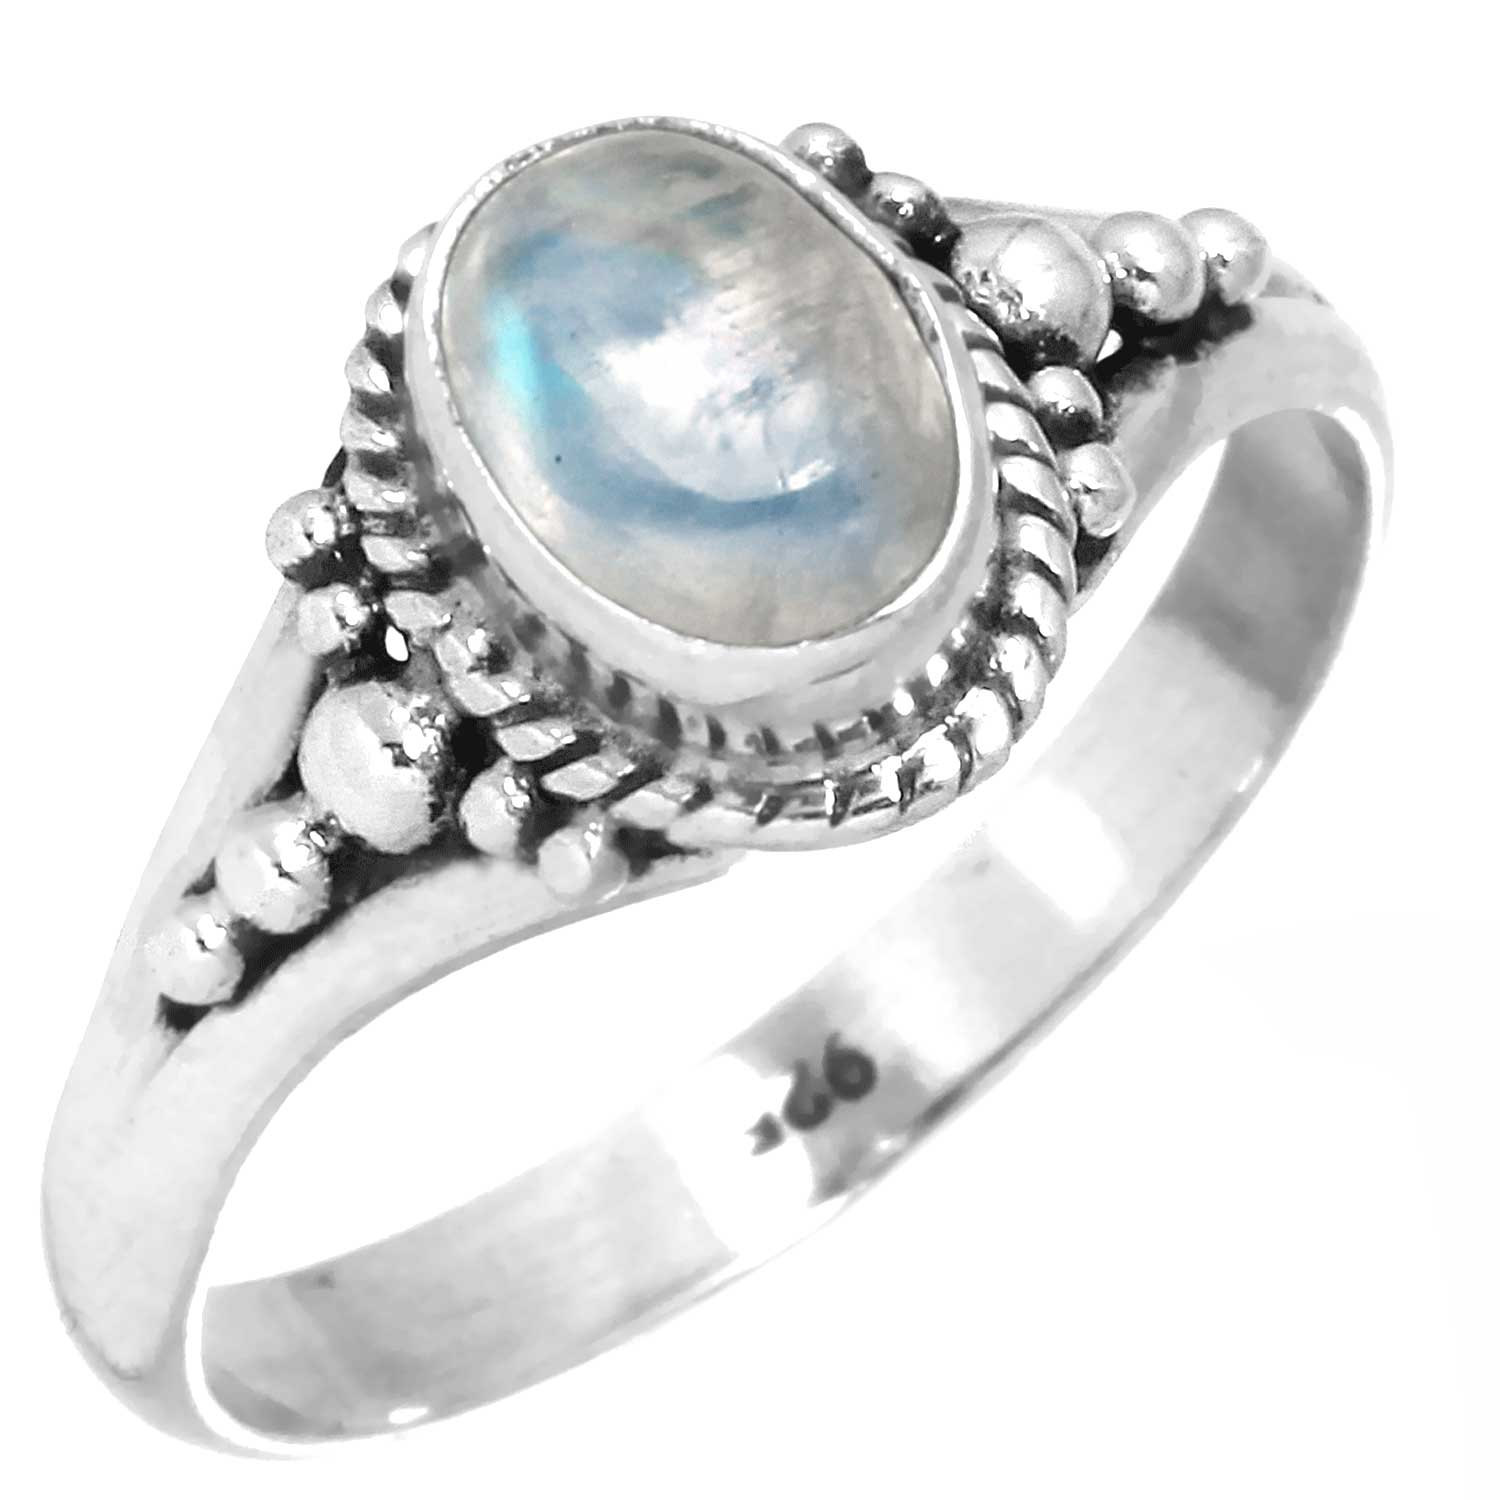 Sterling silver Rainbow Moonstone (5x8mm) Ring